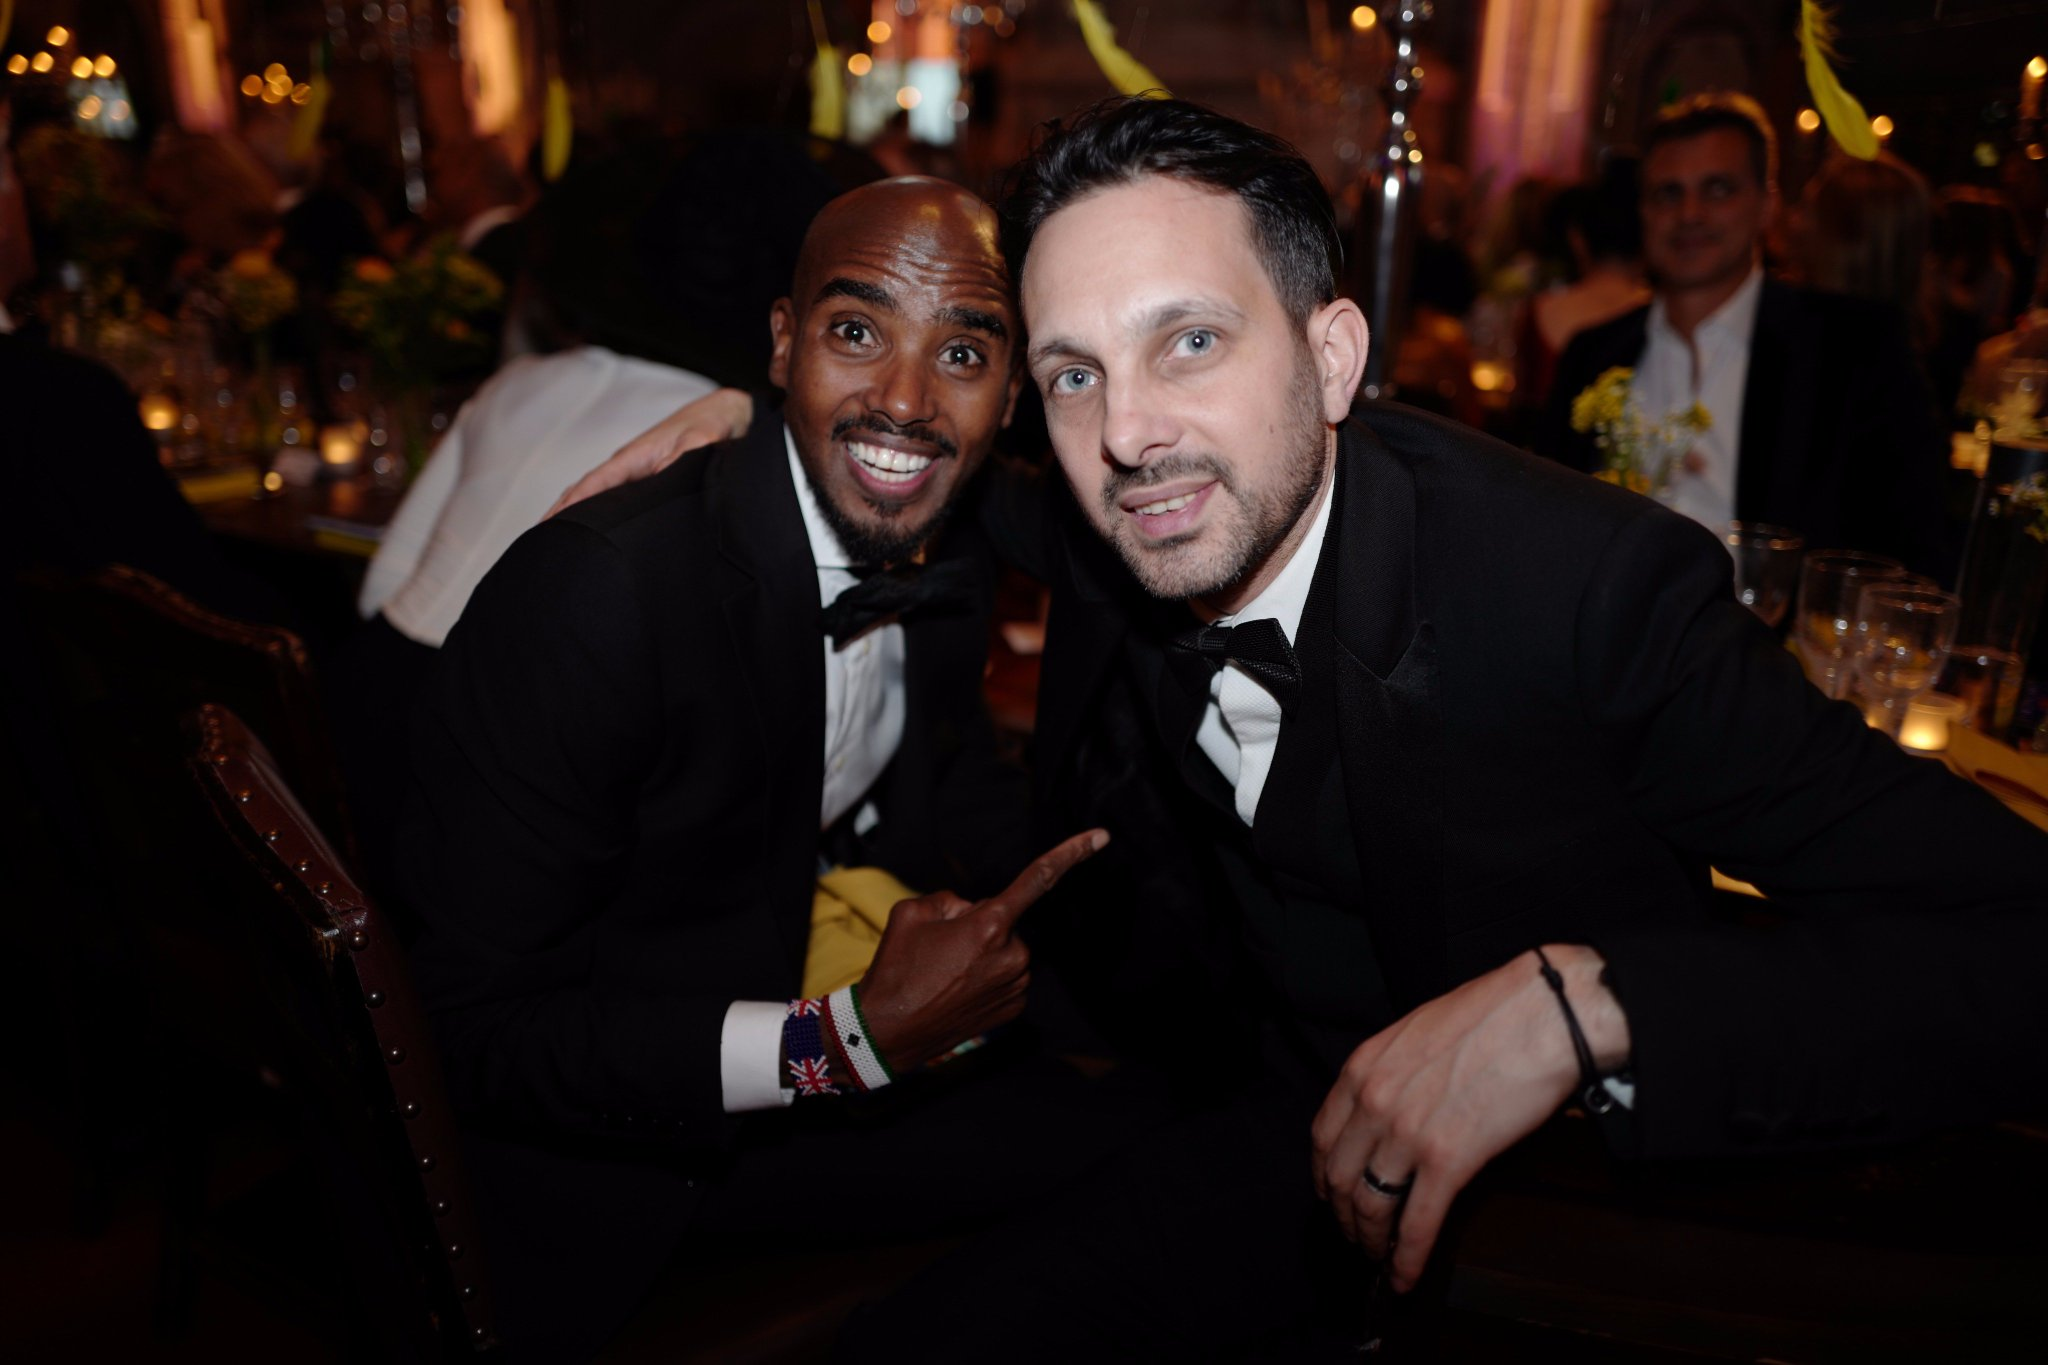 RT @Dynamomagician: Great evening with the legendary SIR Mo Farah at the Save The Children Winter Gala. https://t.co/yVLLP8WDB6